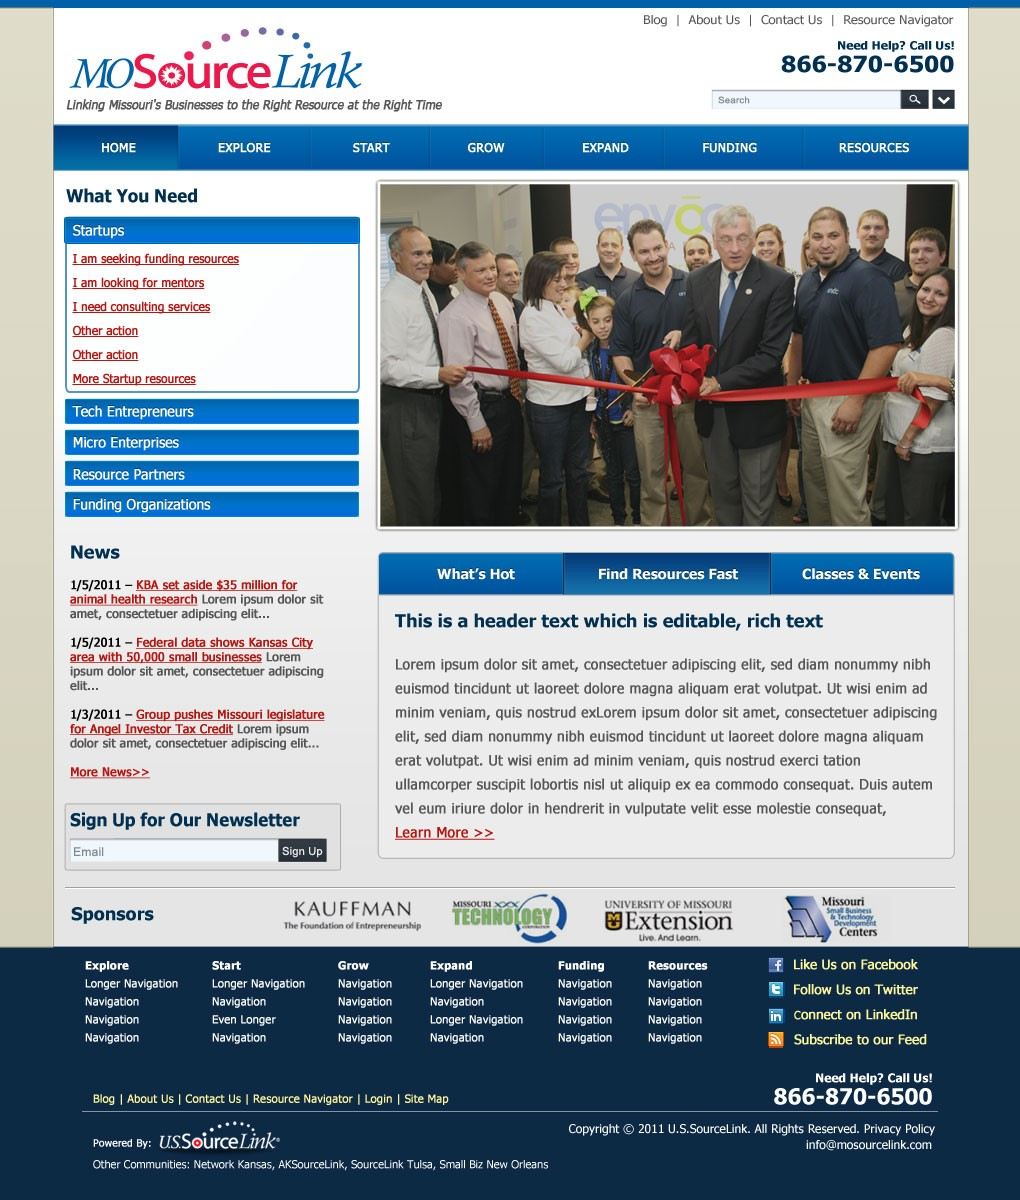 MOSourceLink Sitefinity Website Redesign - Habanero - St  Louis